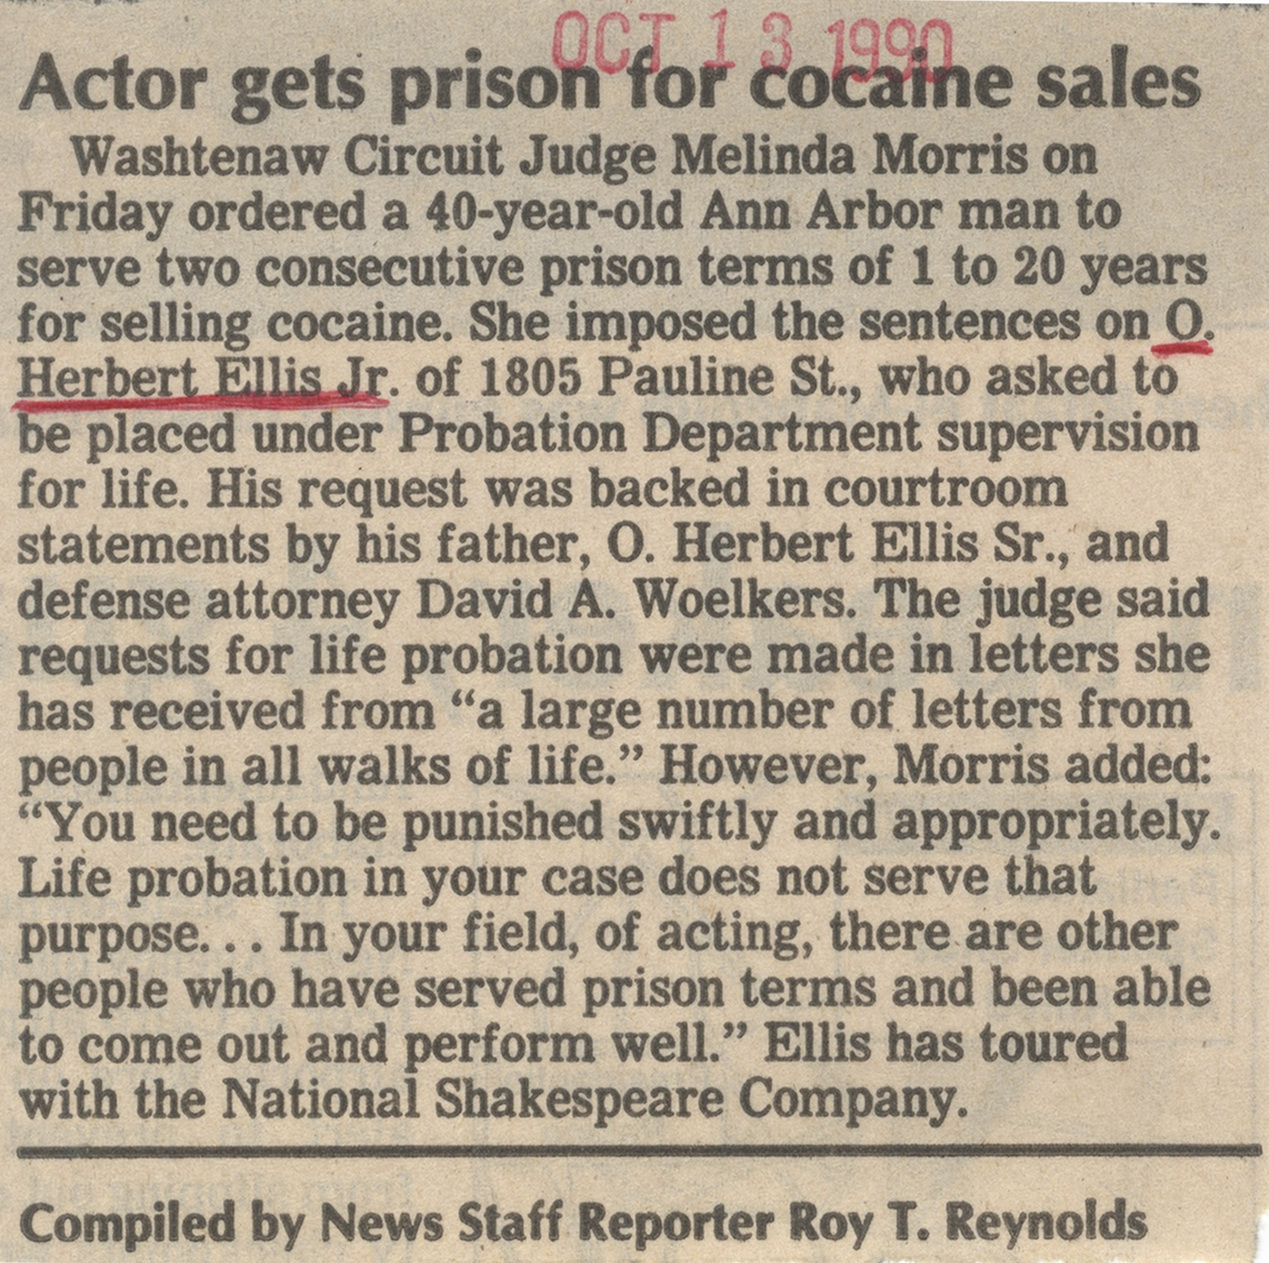 Actor Gets Prison For Cocaine Sales image